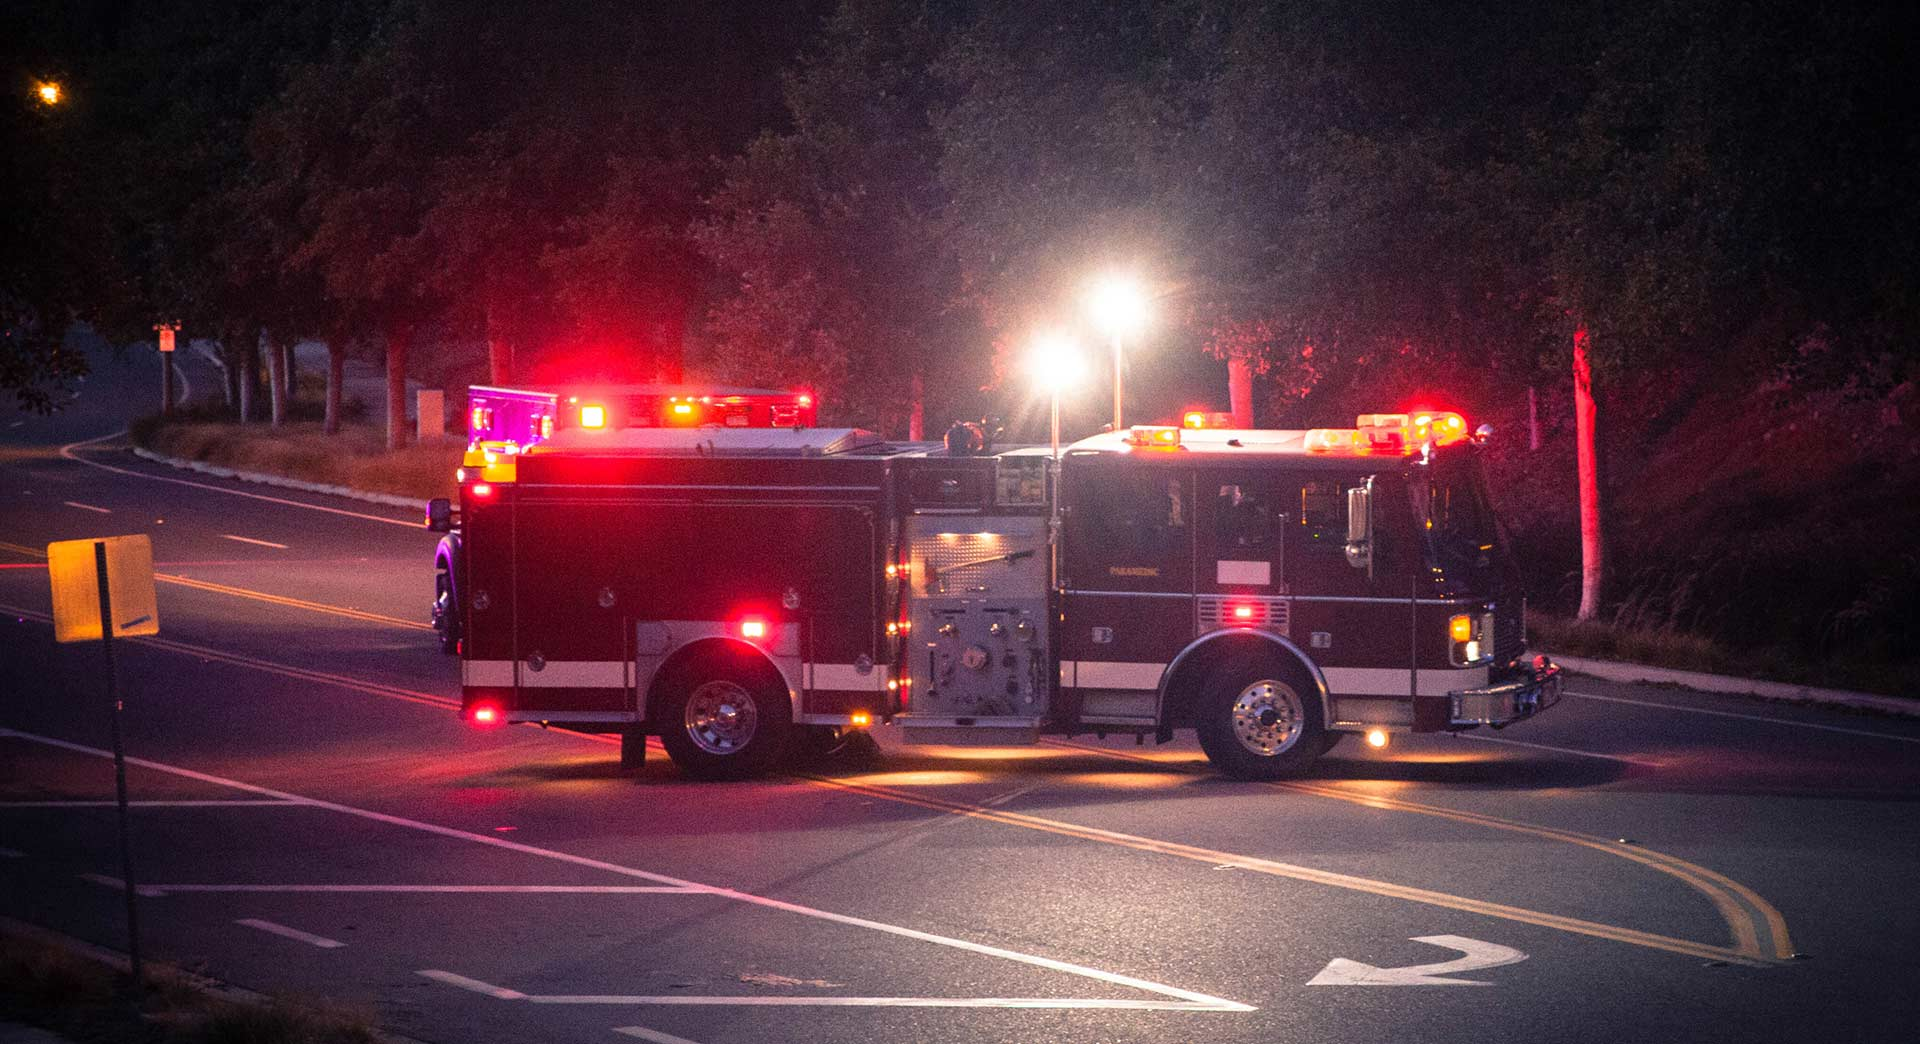 Led Strobe Lights For Trucks >> Choosing Emergency Vehicle Lights | Types Of Fire Truck Lights